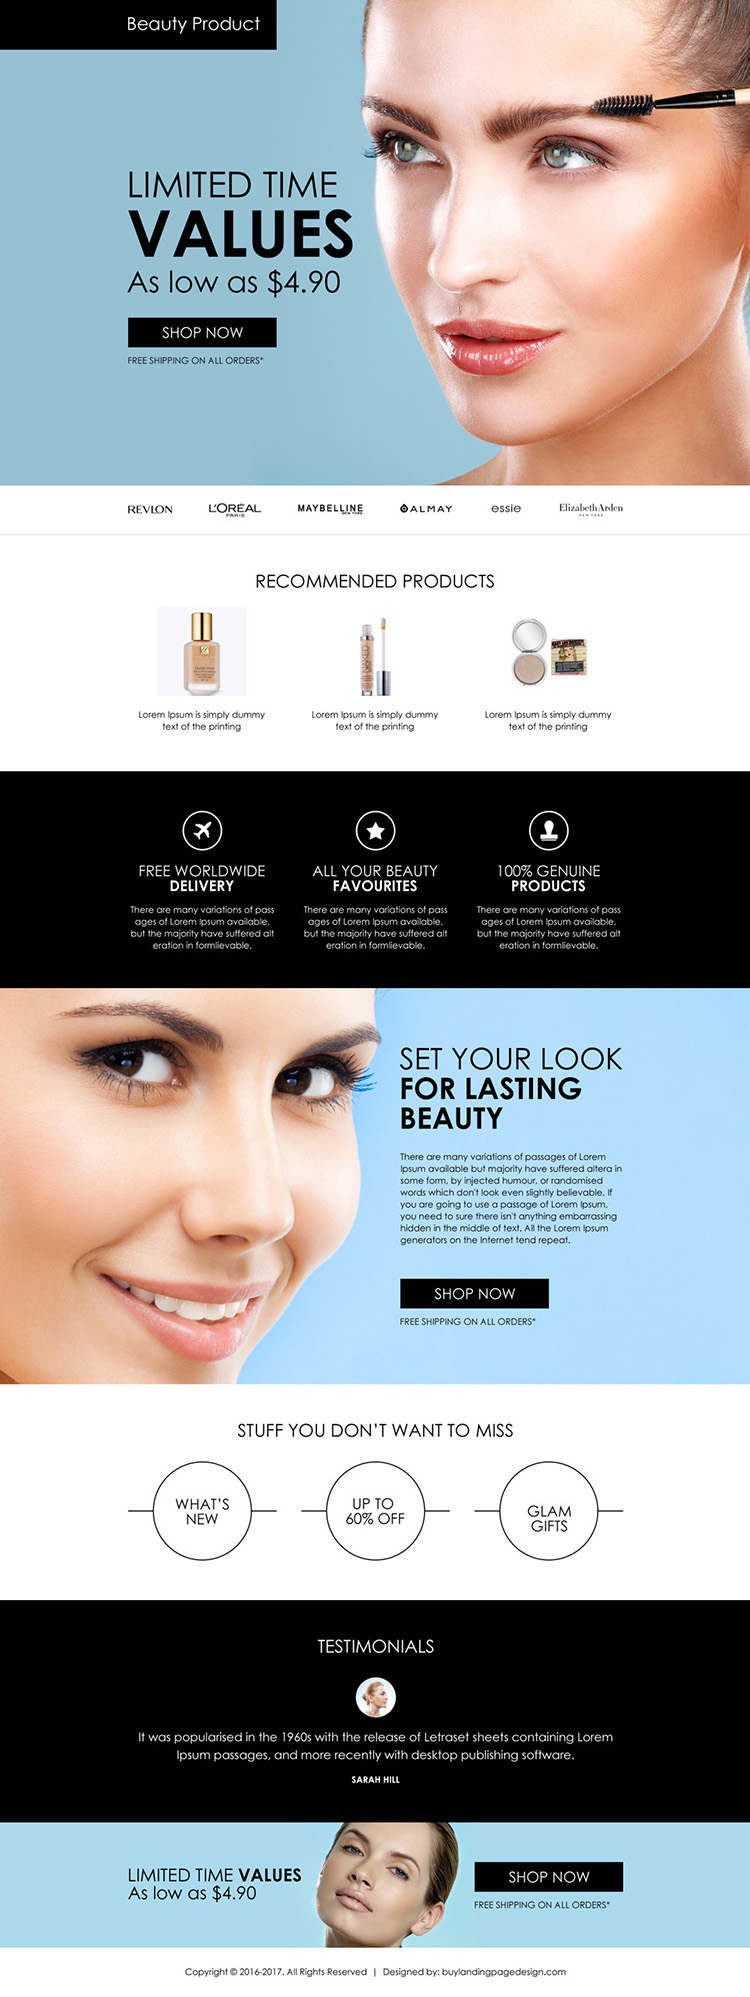 beauty products selling appealing landing page design